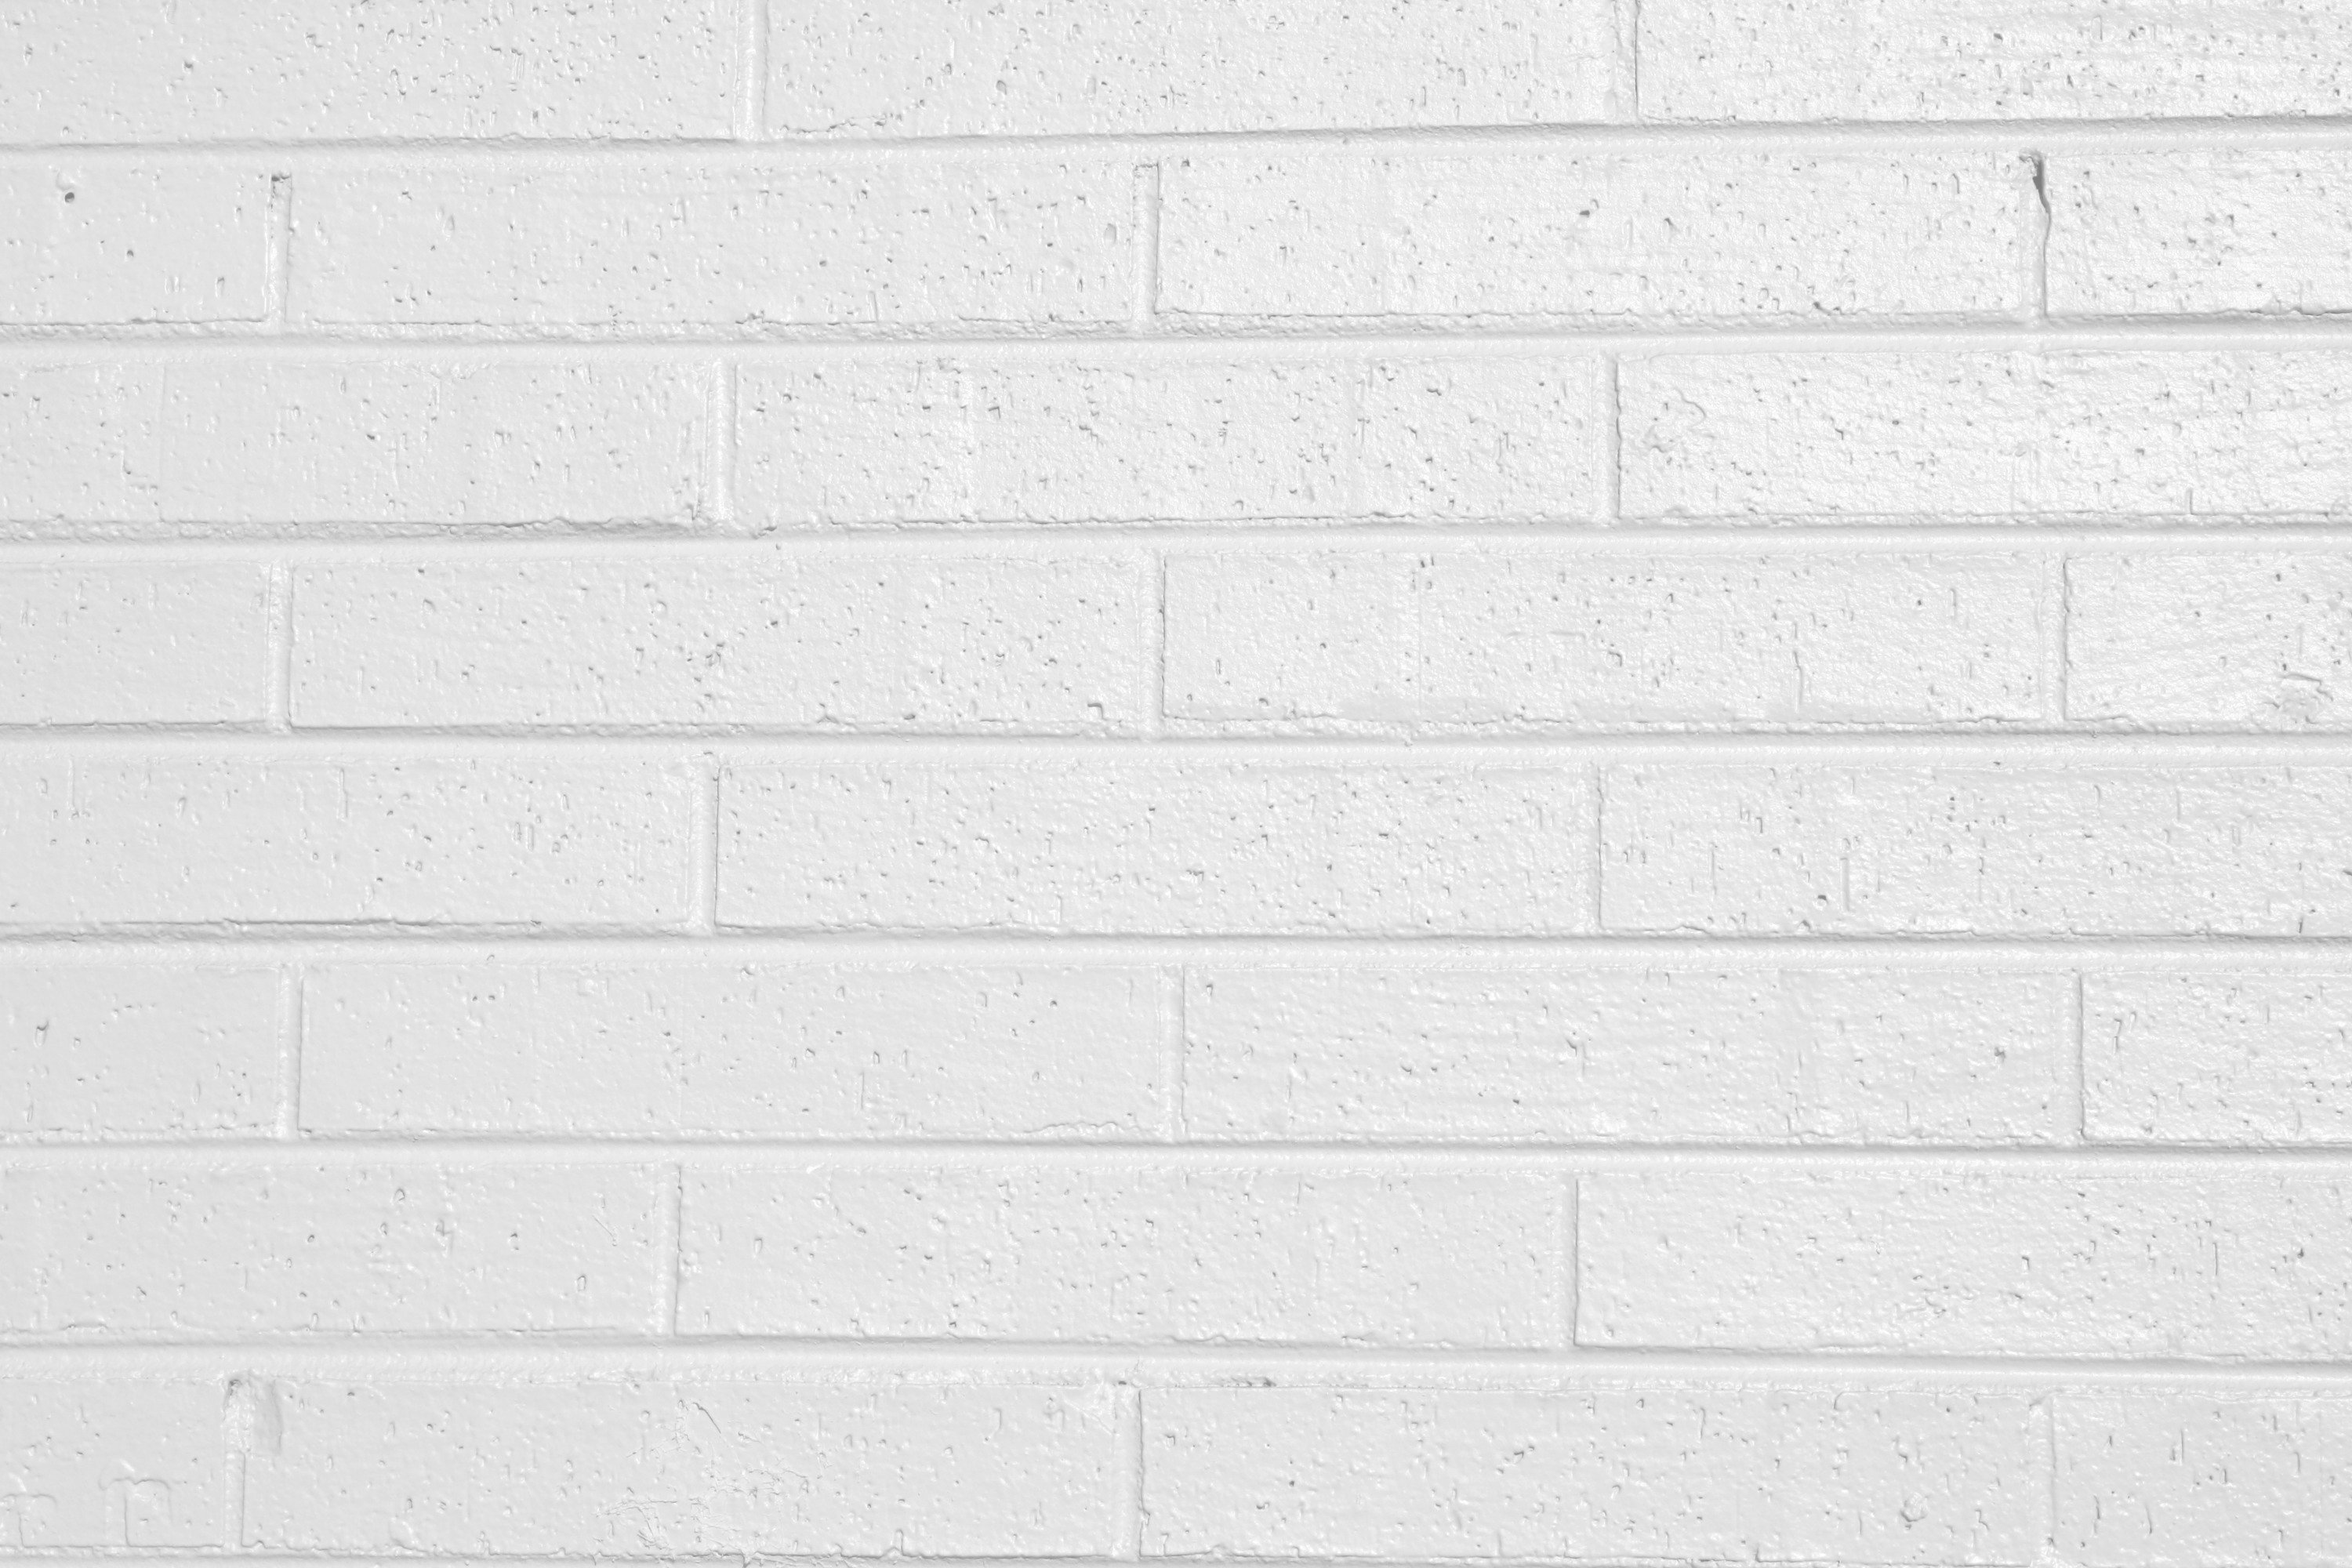 White Painted Brick Wall Texture Photograph Photos - Homes ...